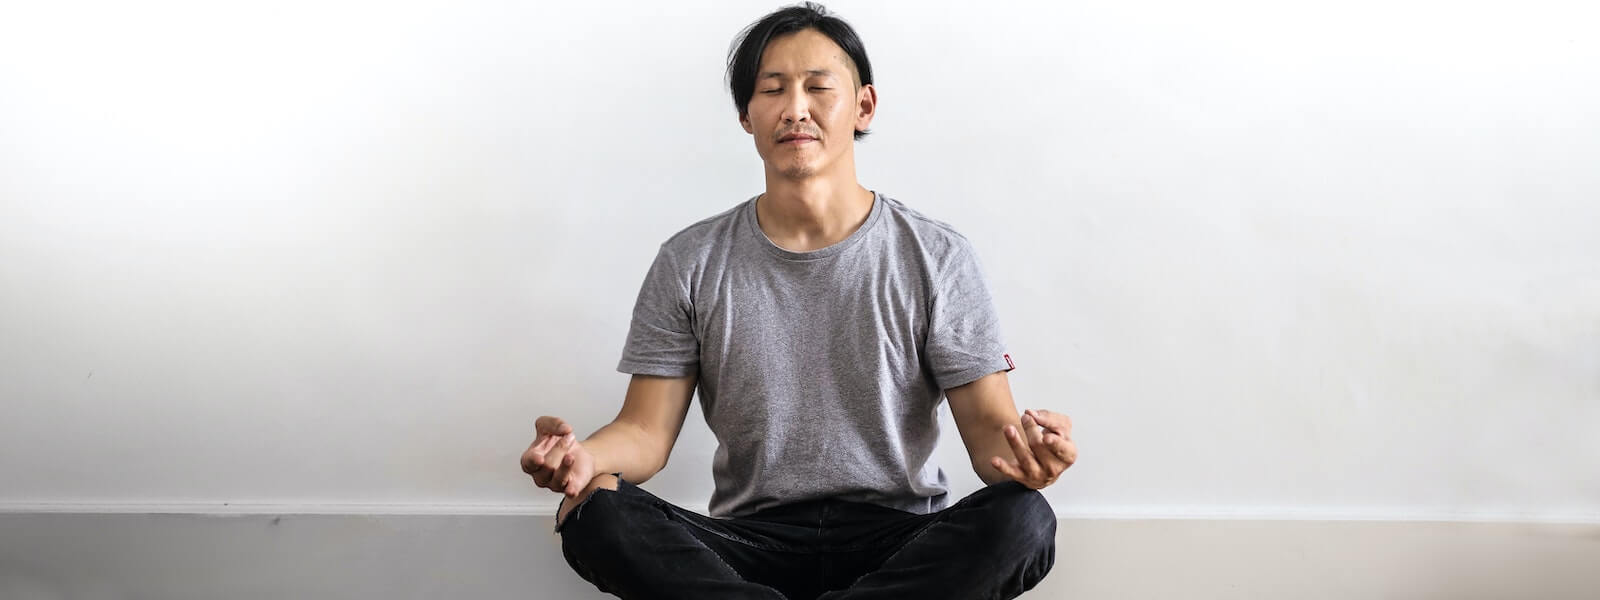 Man incorporating mindfulness into his routine.